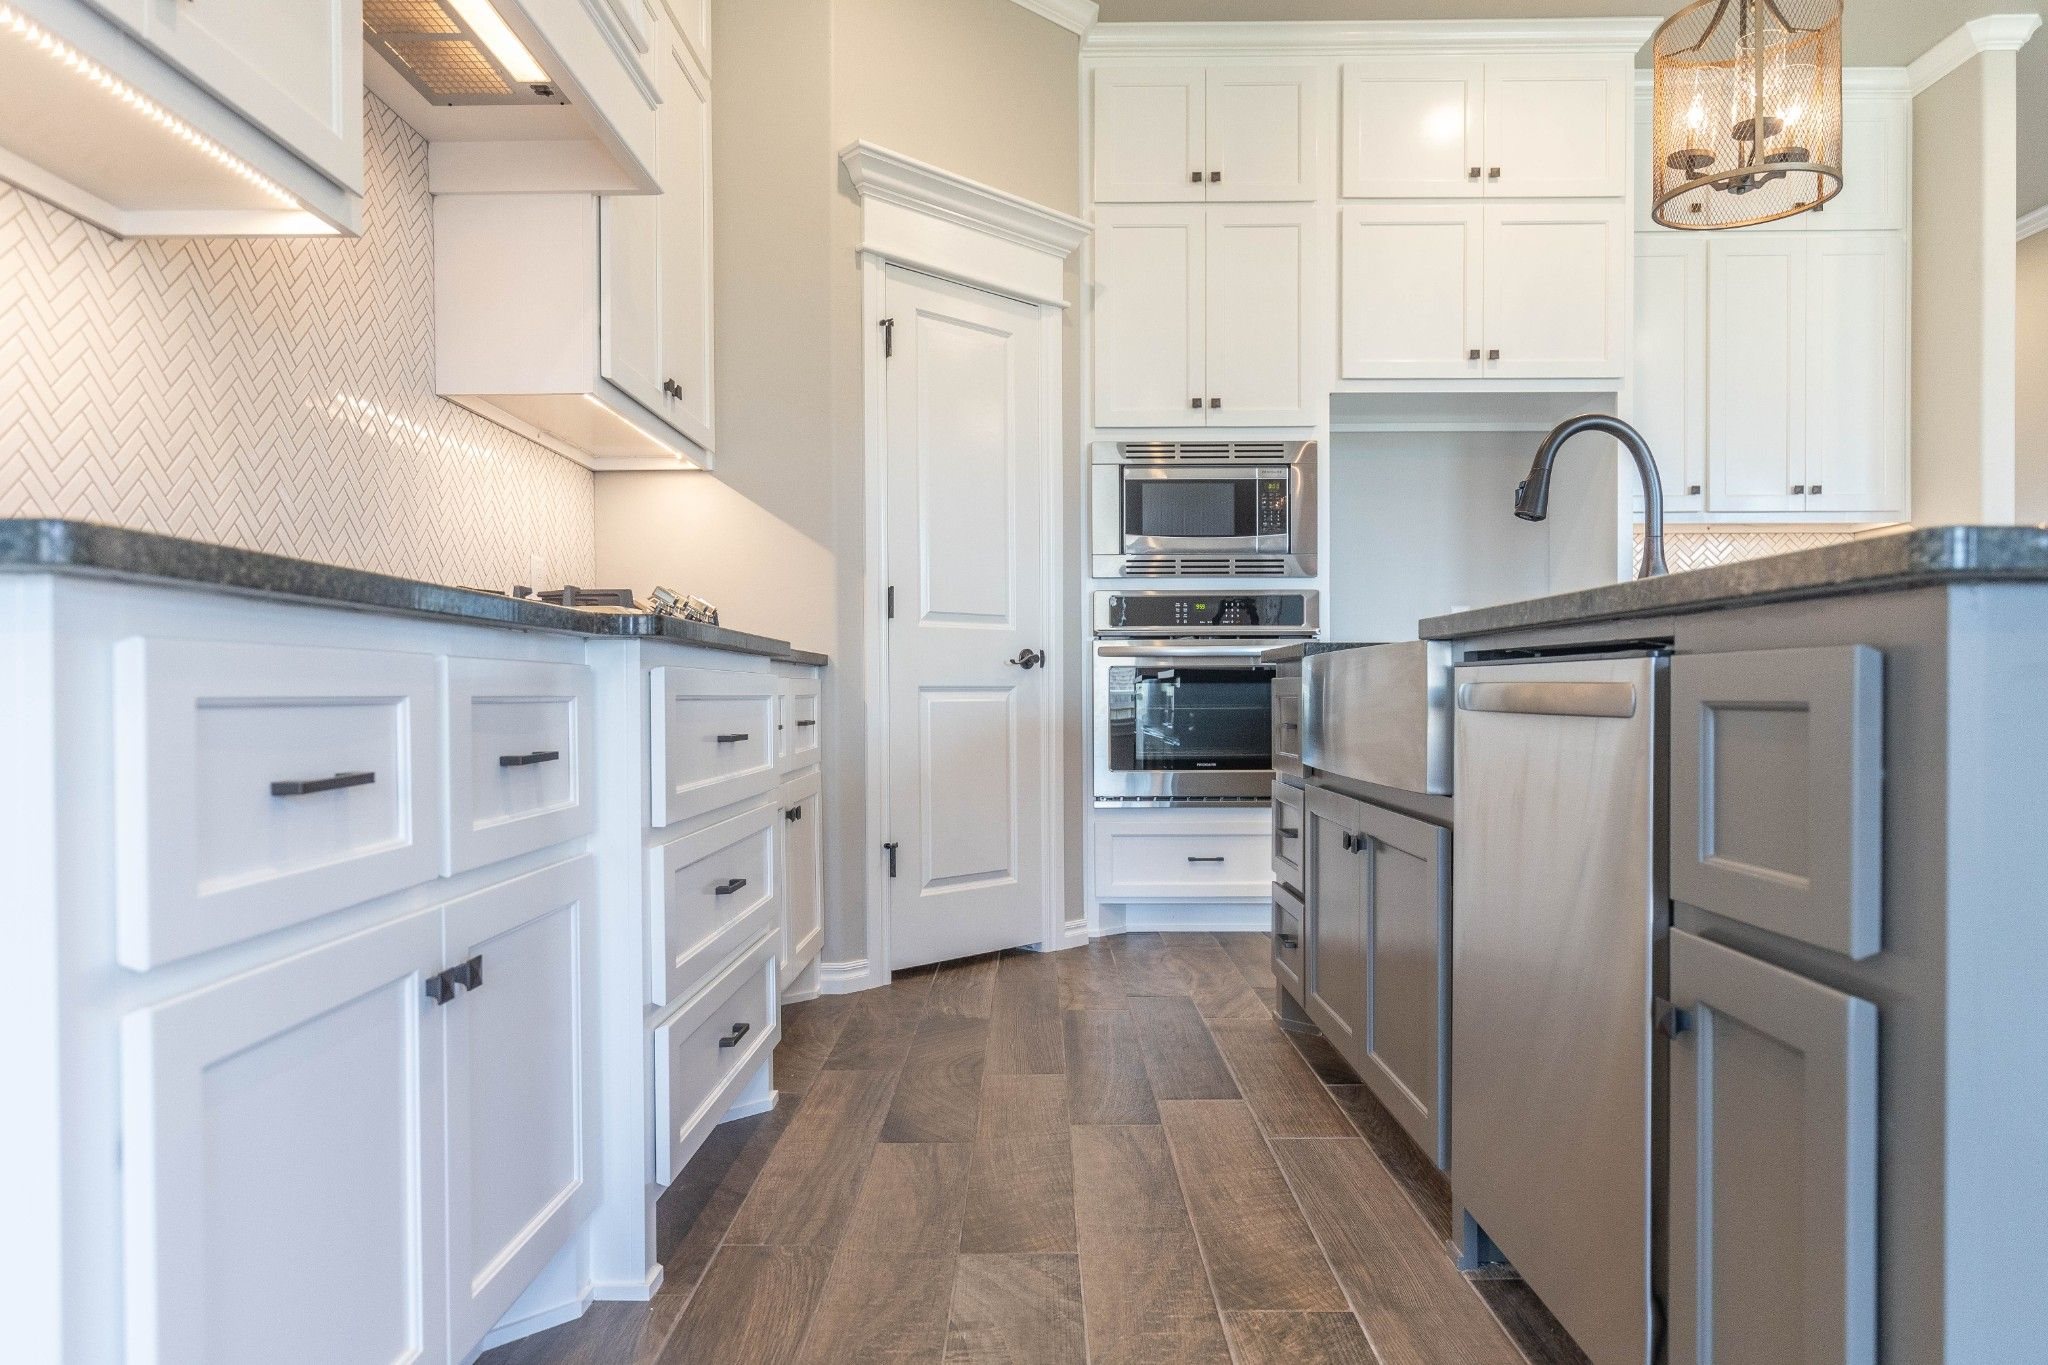 Kitchen featured in the Hazel By Homes By Taber in Oklahoma City, OK